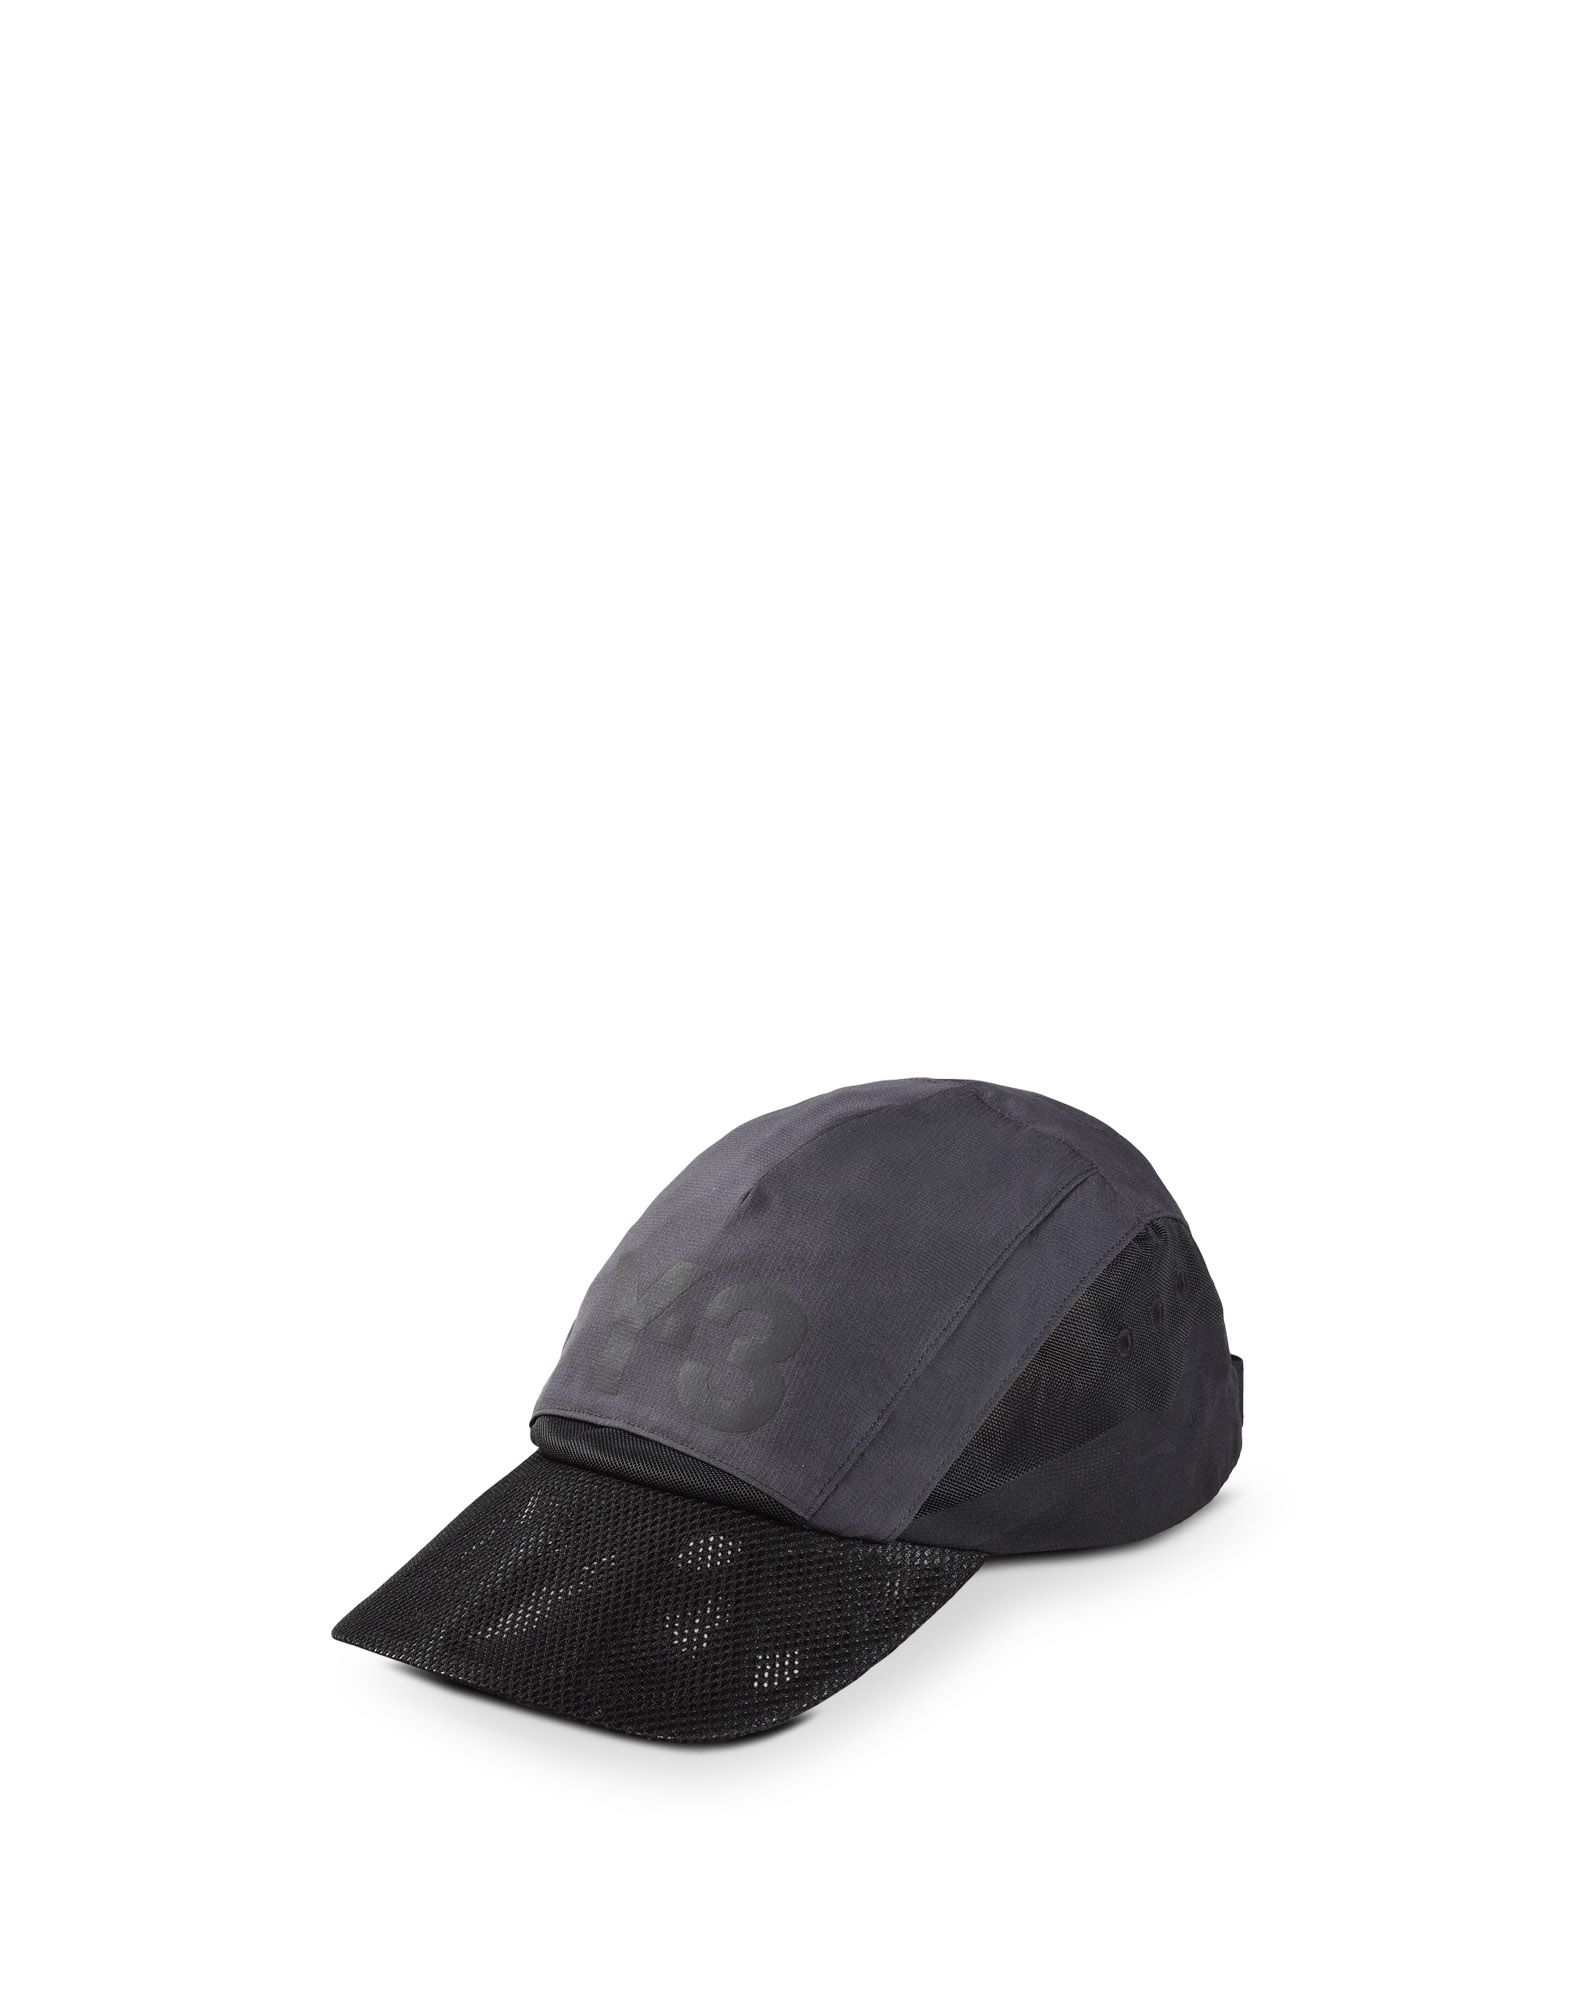 Y-3 RUN BLACK CAP OTHER ACCESSORIES unisex Y-3 adidas